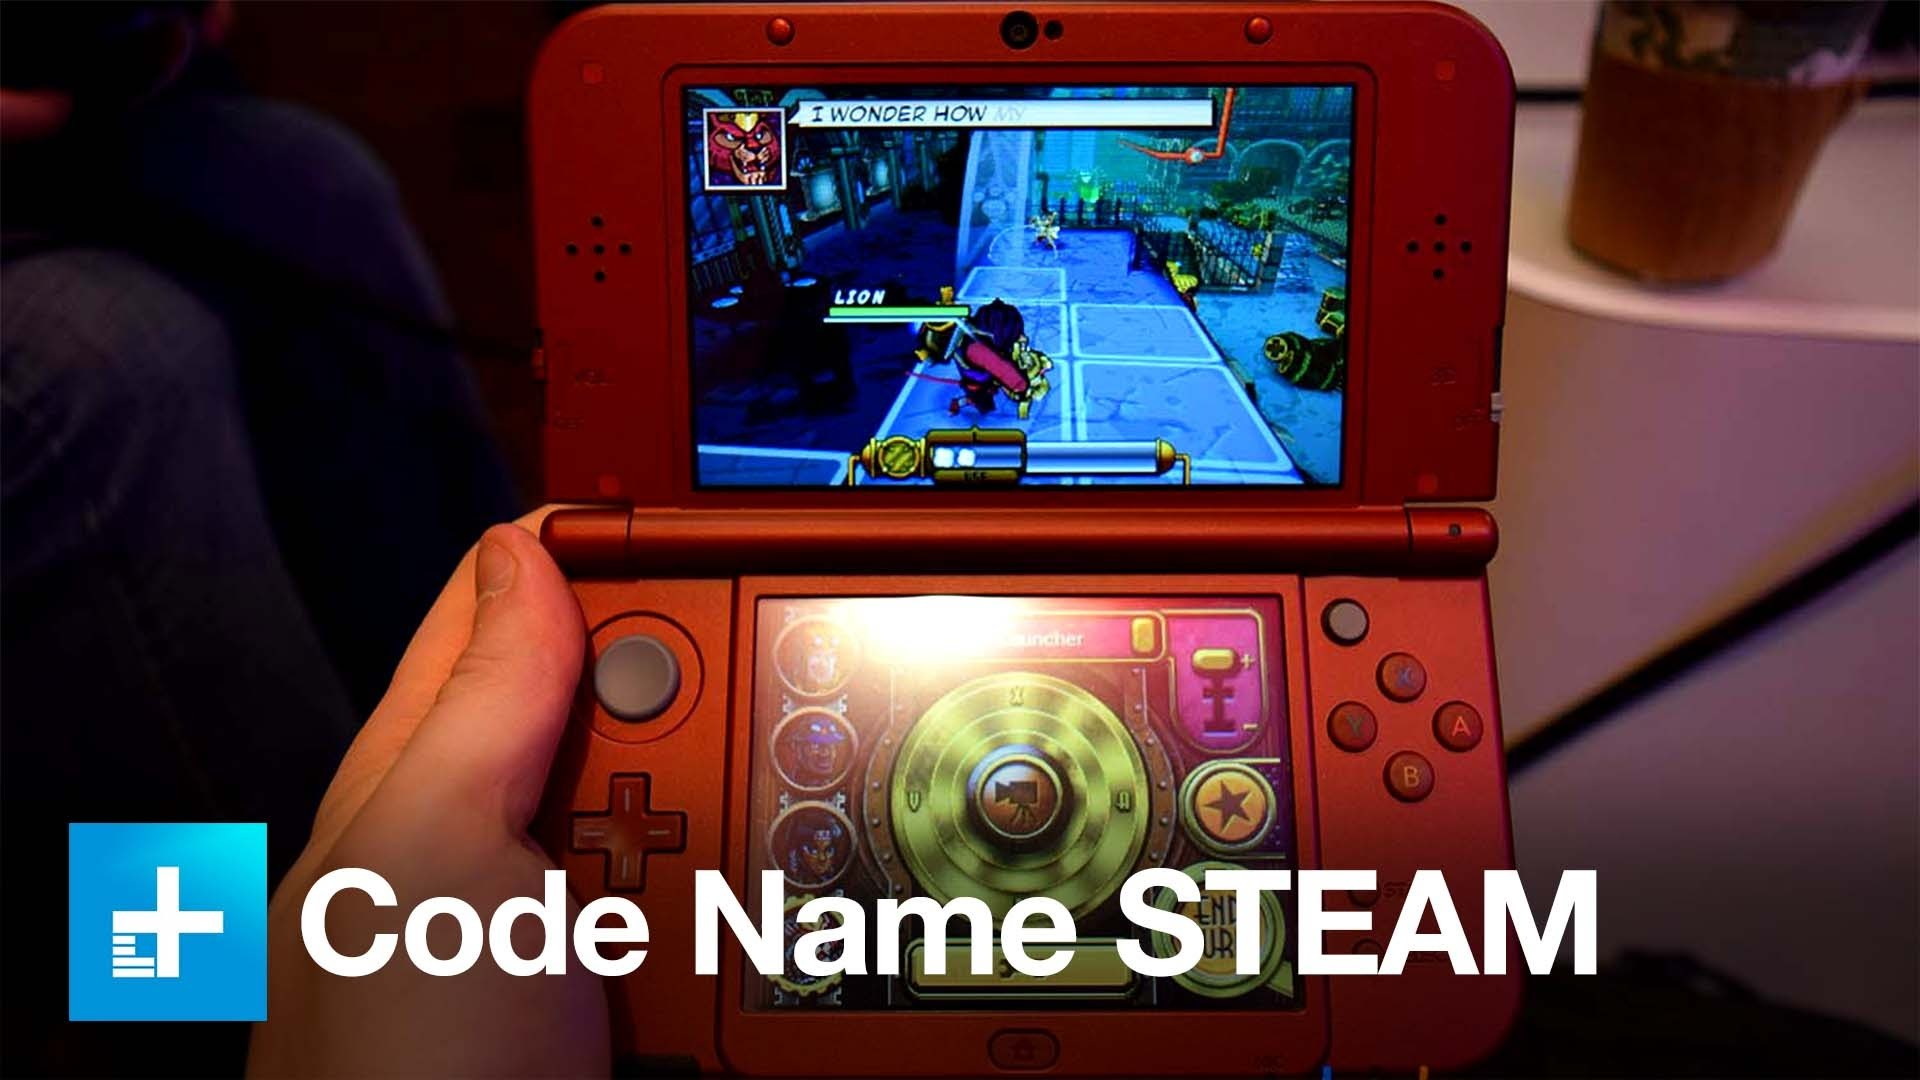 Code Name STEAM – New 3DS XL